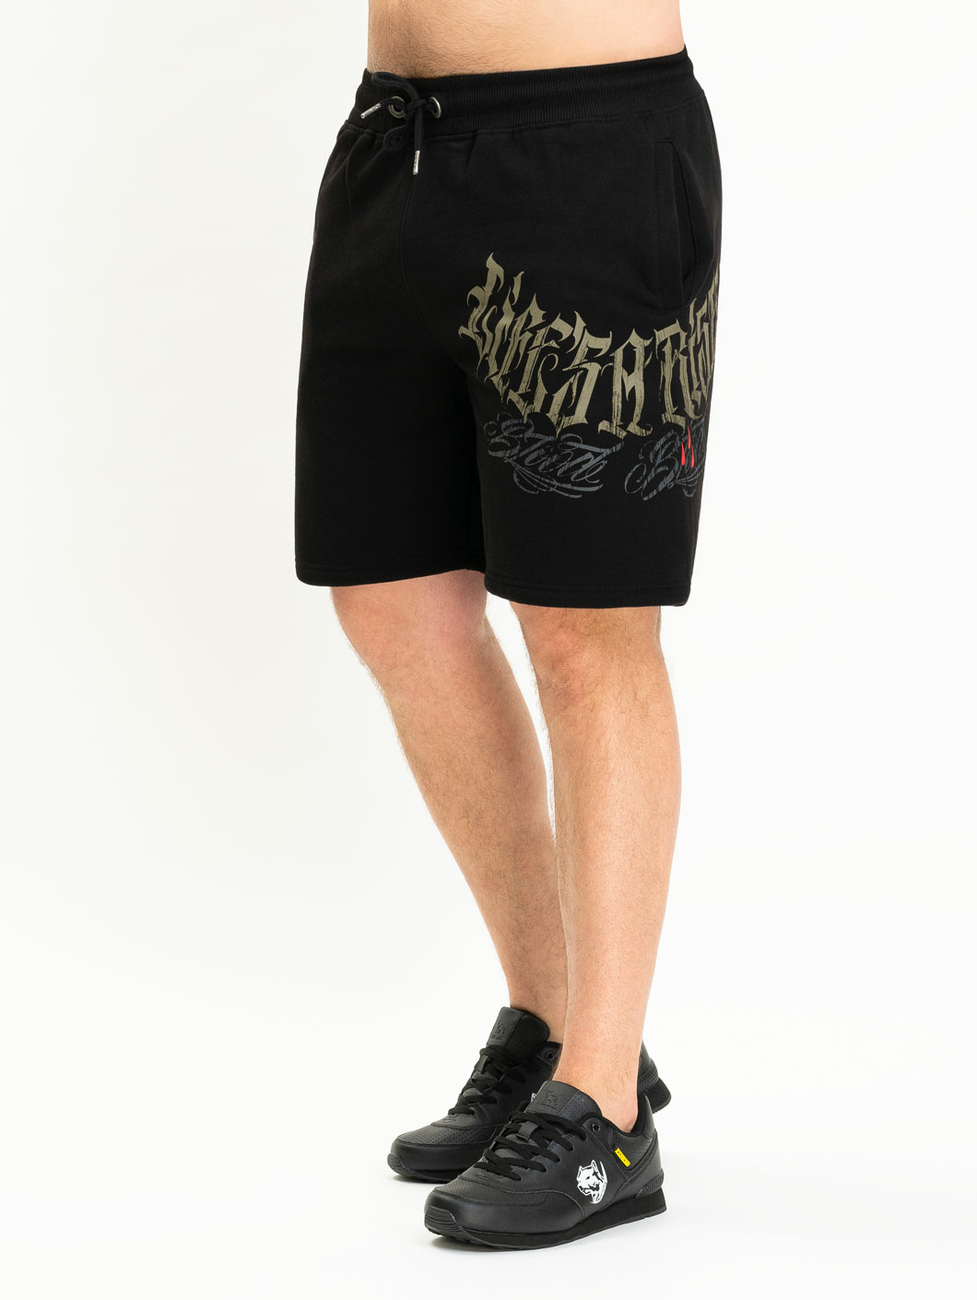 Blood In Blood Out Miembros Sweatshorts 3XL